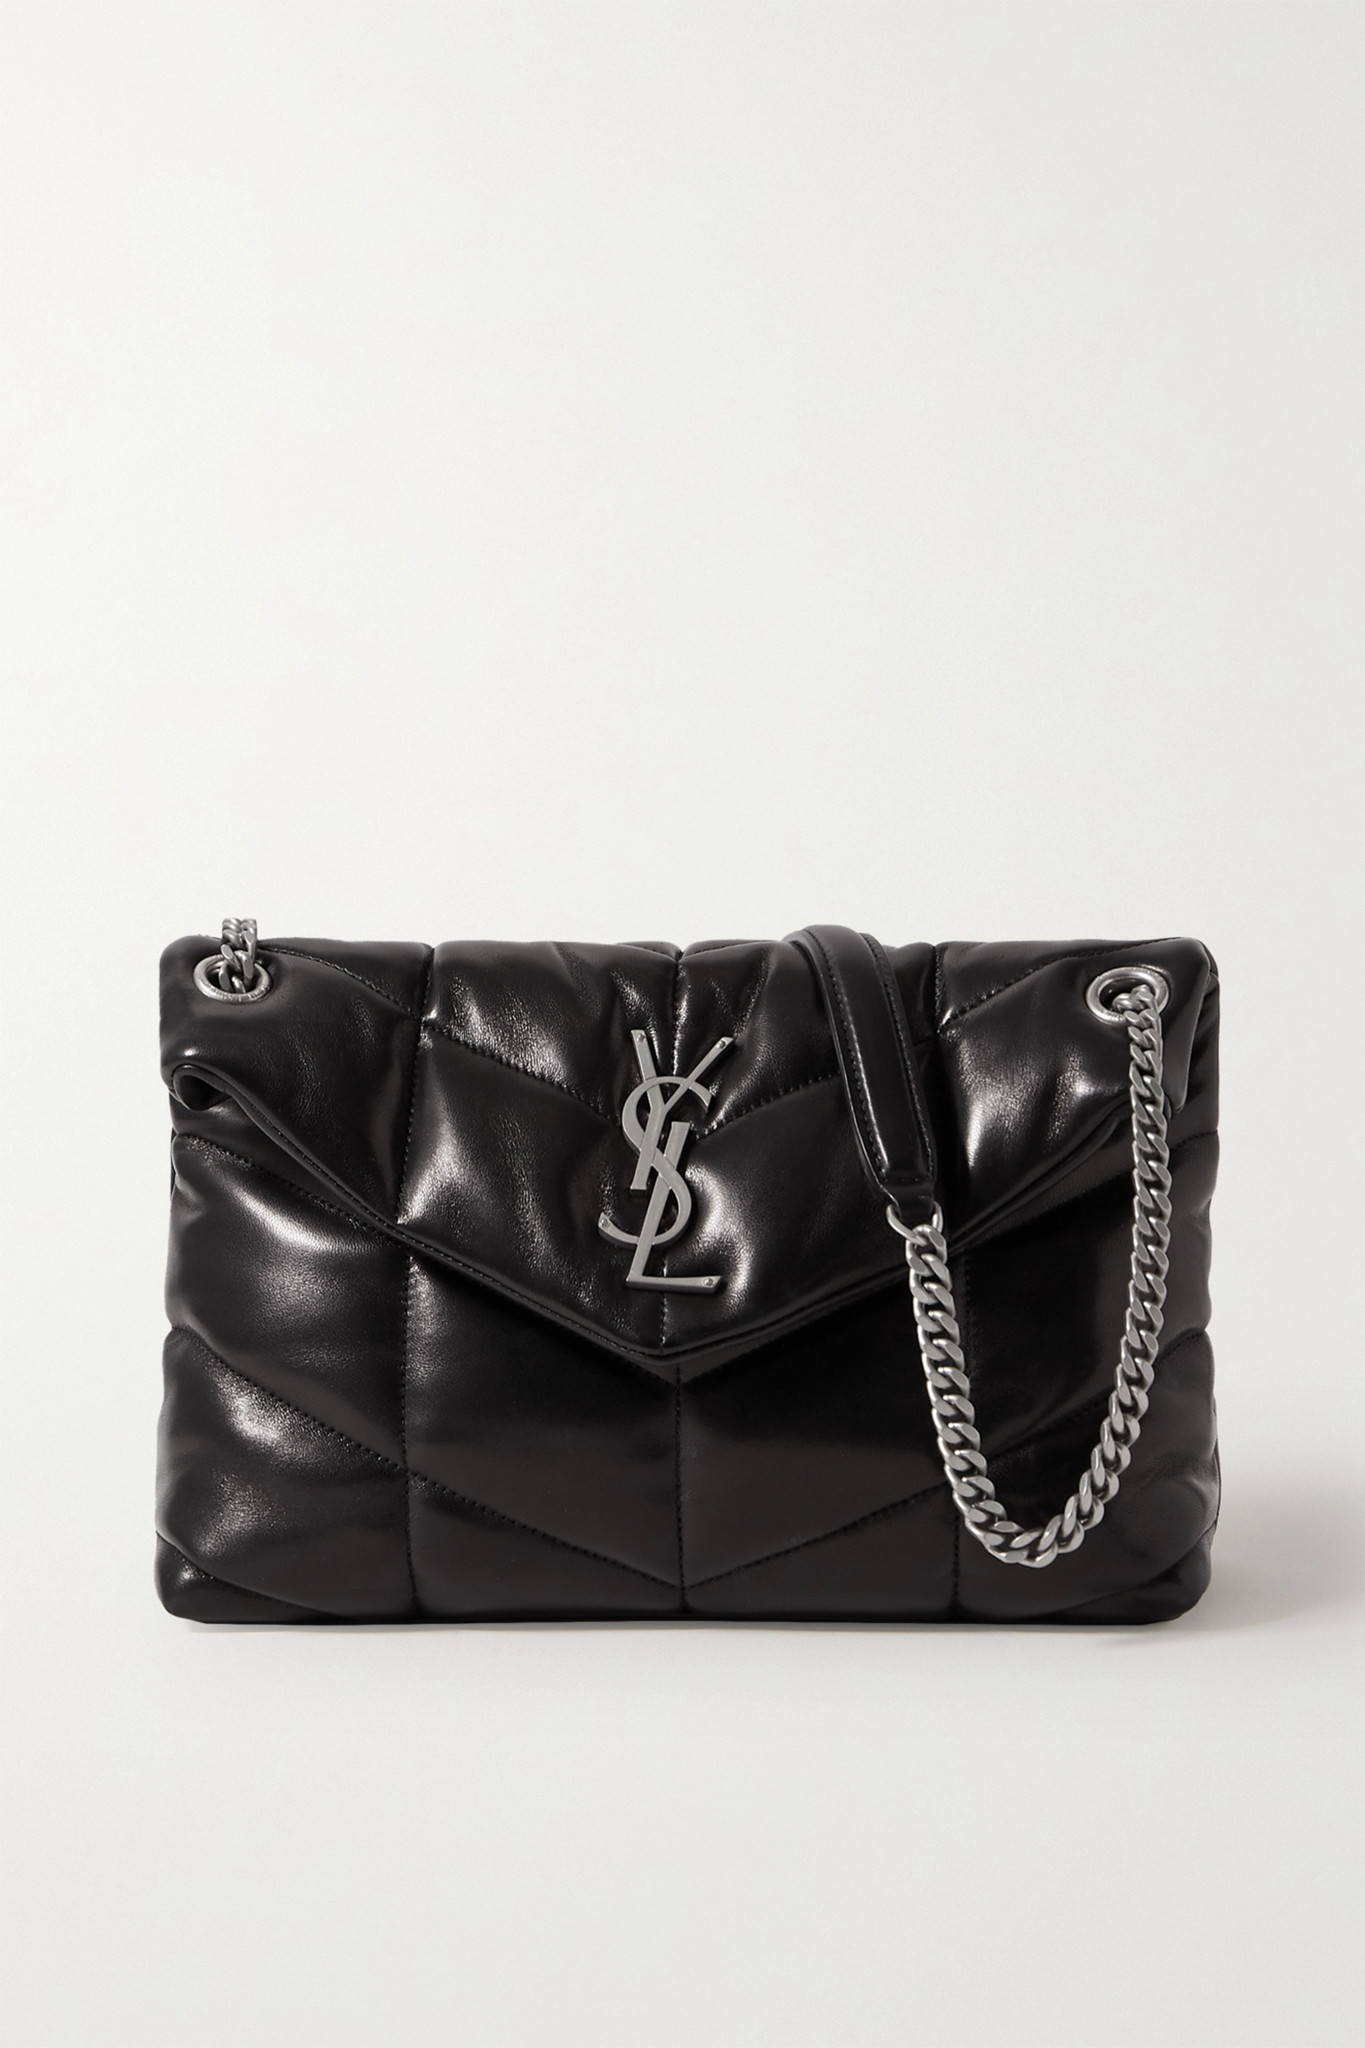 SAINT LAURENT - Loulou Small Quilted Leather Shoulder Bag - Black - one size